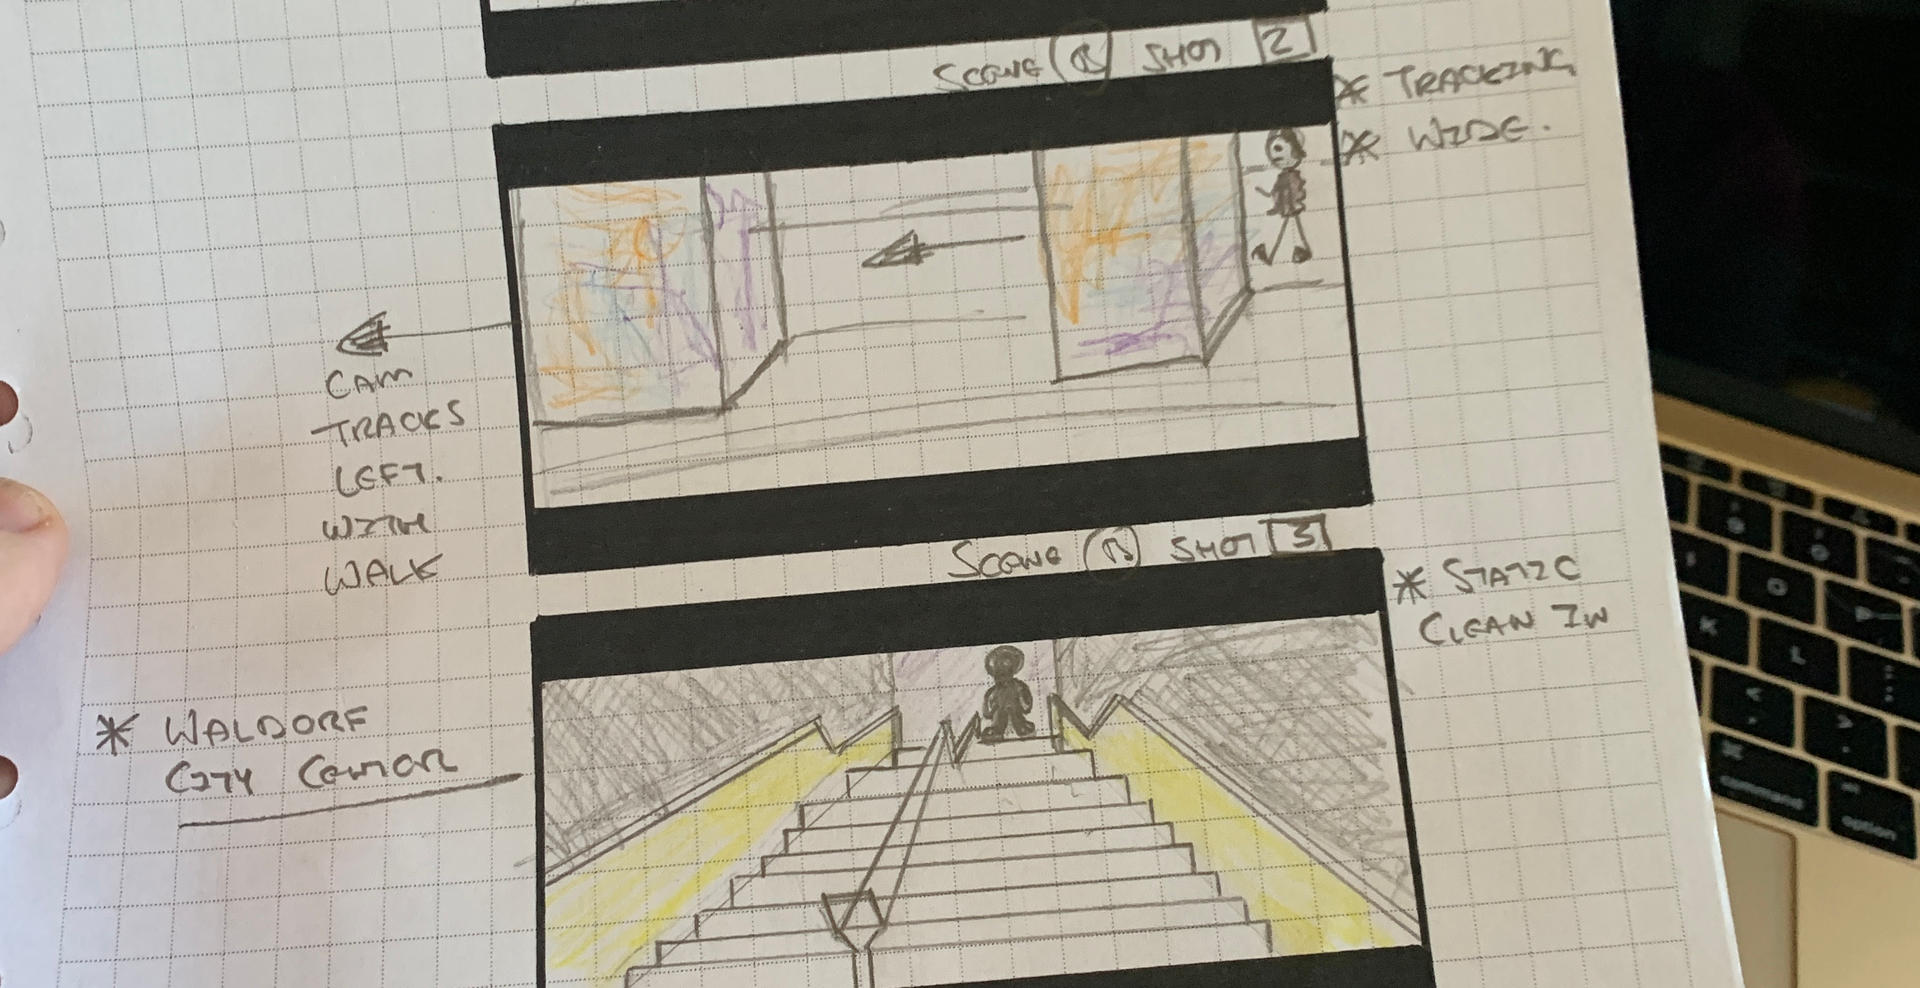 Dark Lights - Storyboards